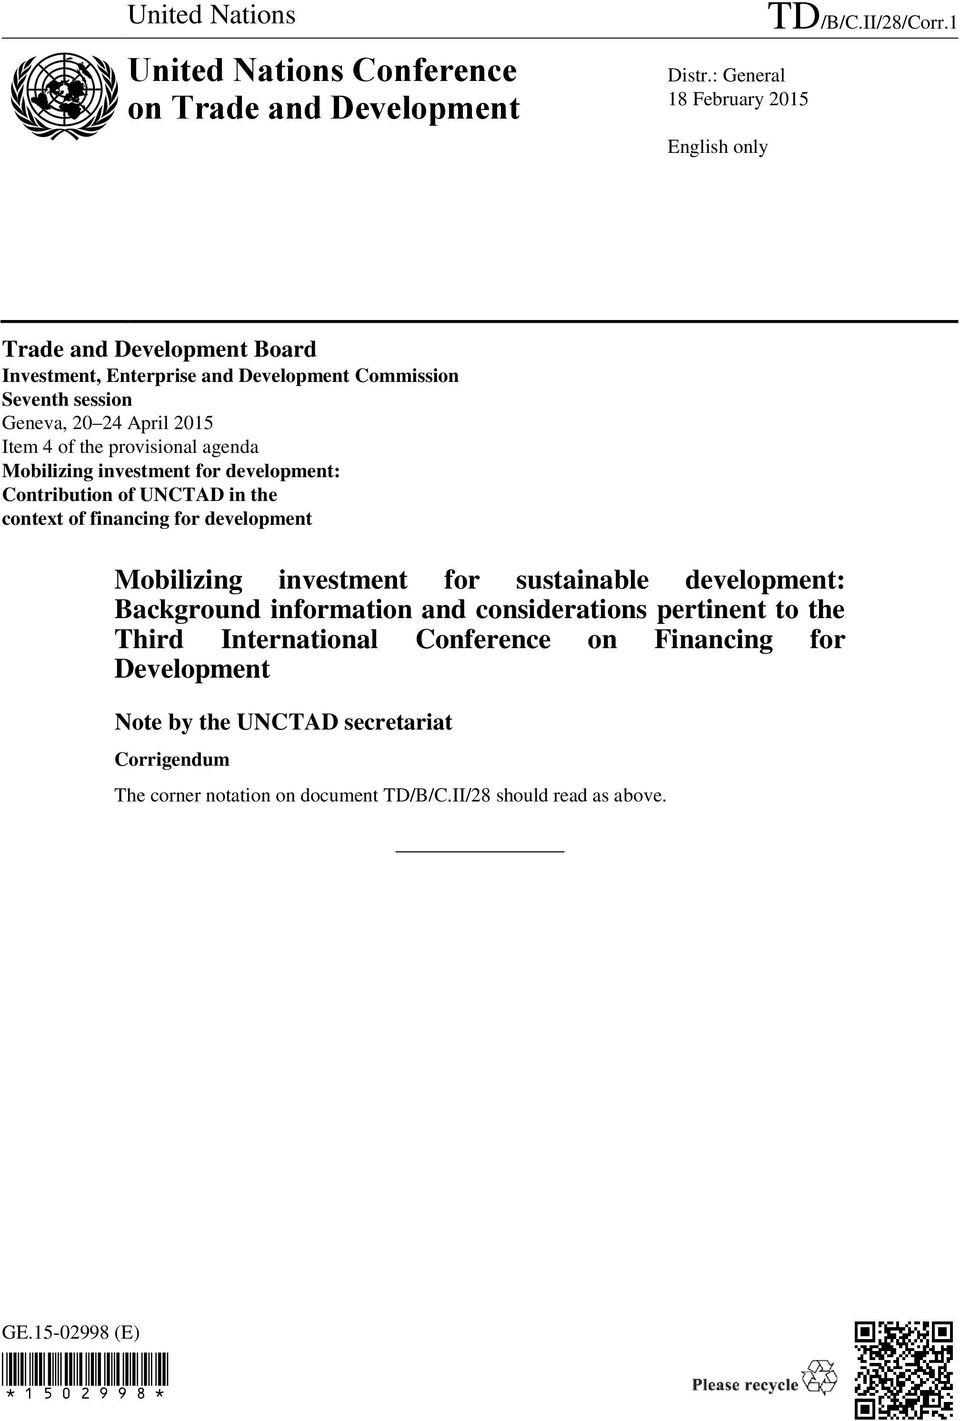 investment for development: Contribution of UNCTAD in the context of financing for development Mobilizing investment for sustainable development: Background information